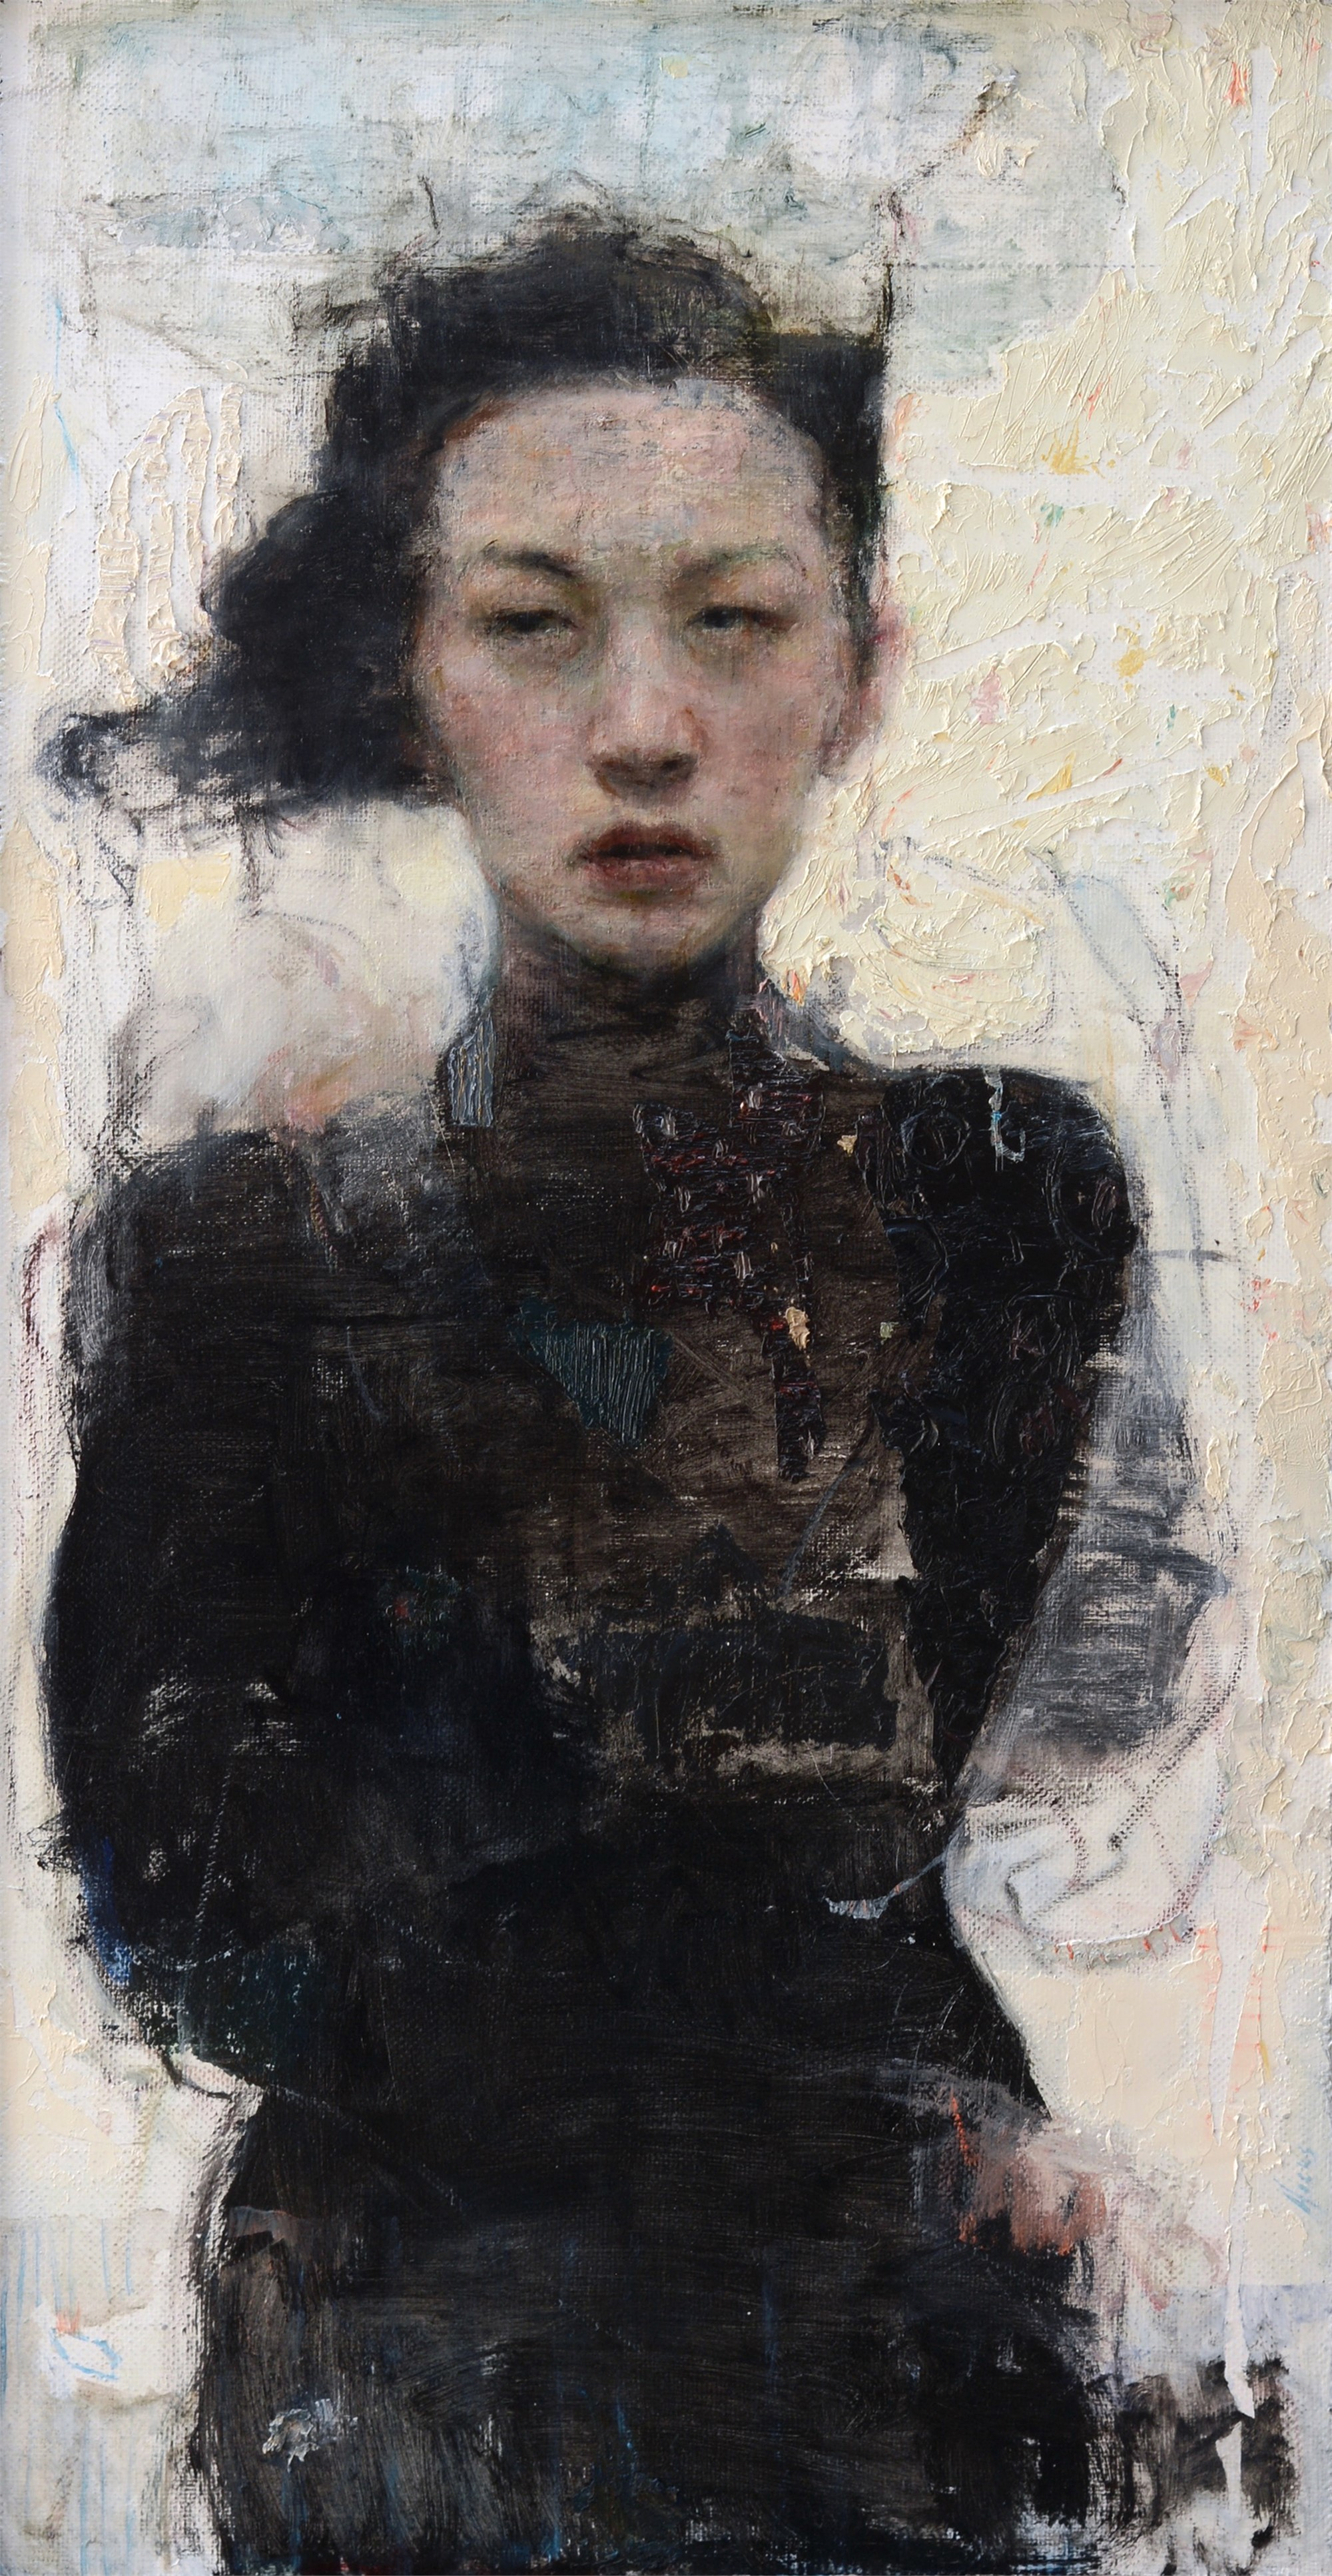 Untitled 9 by Ron Hicks